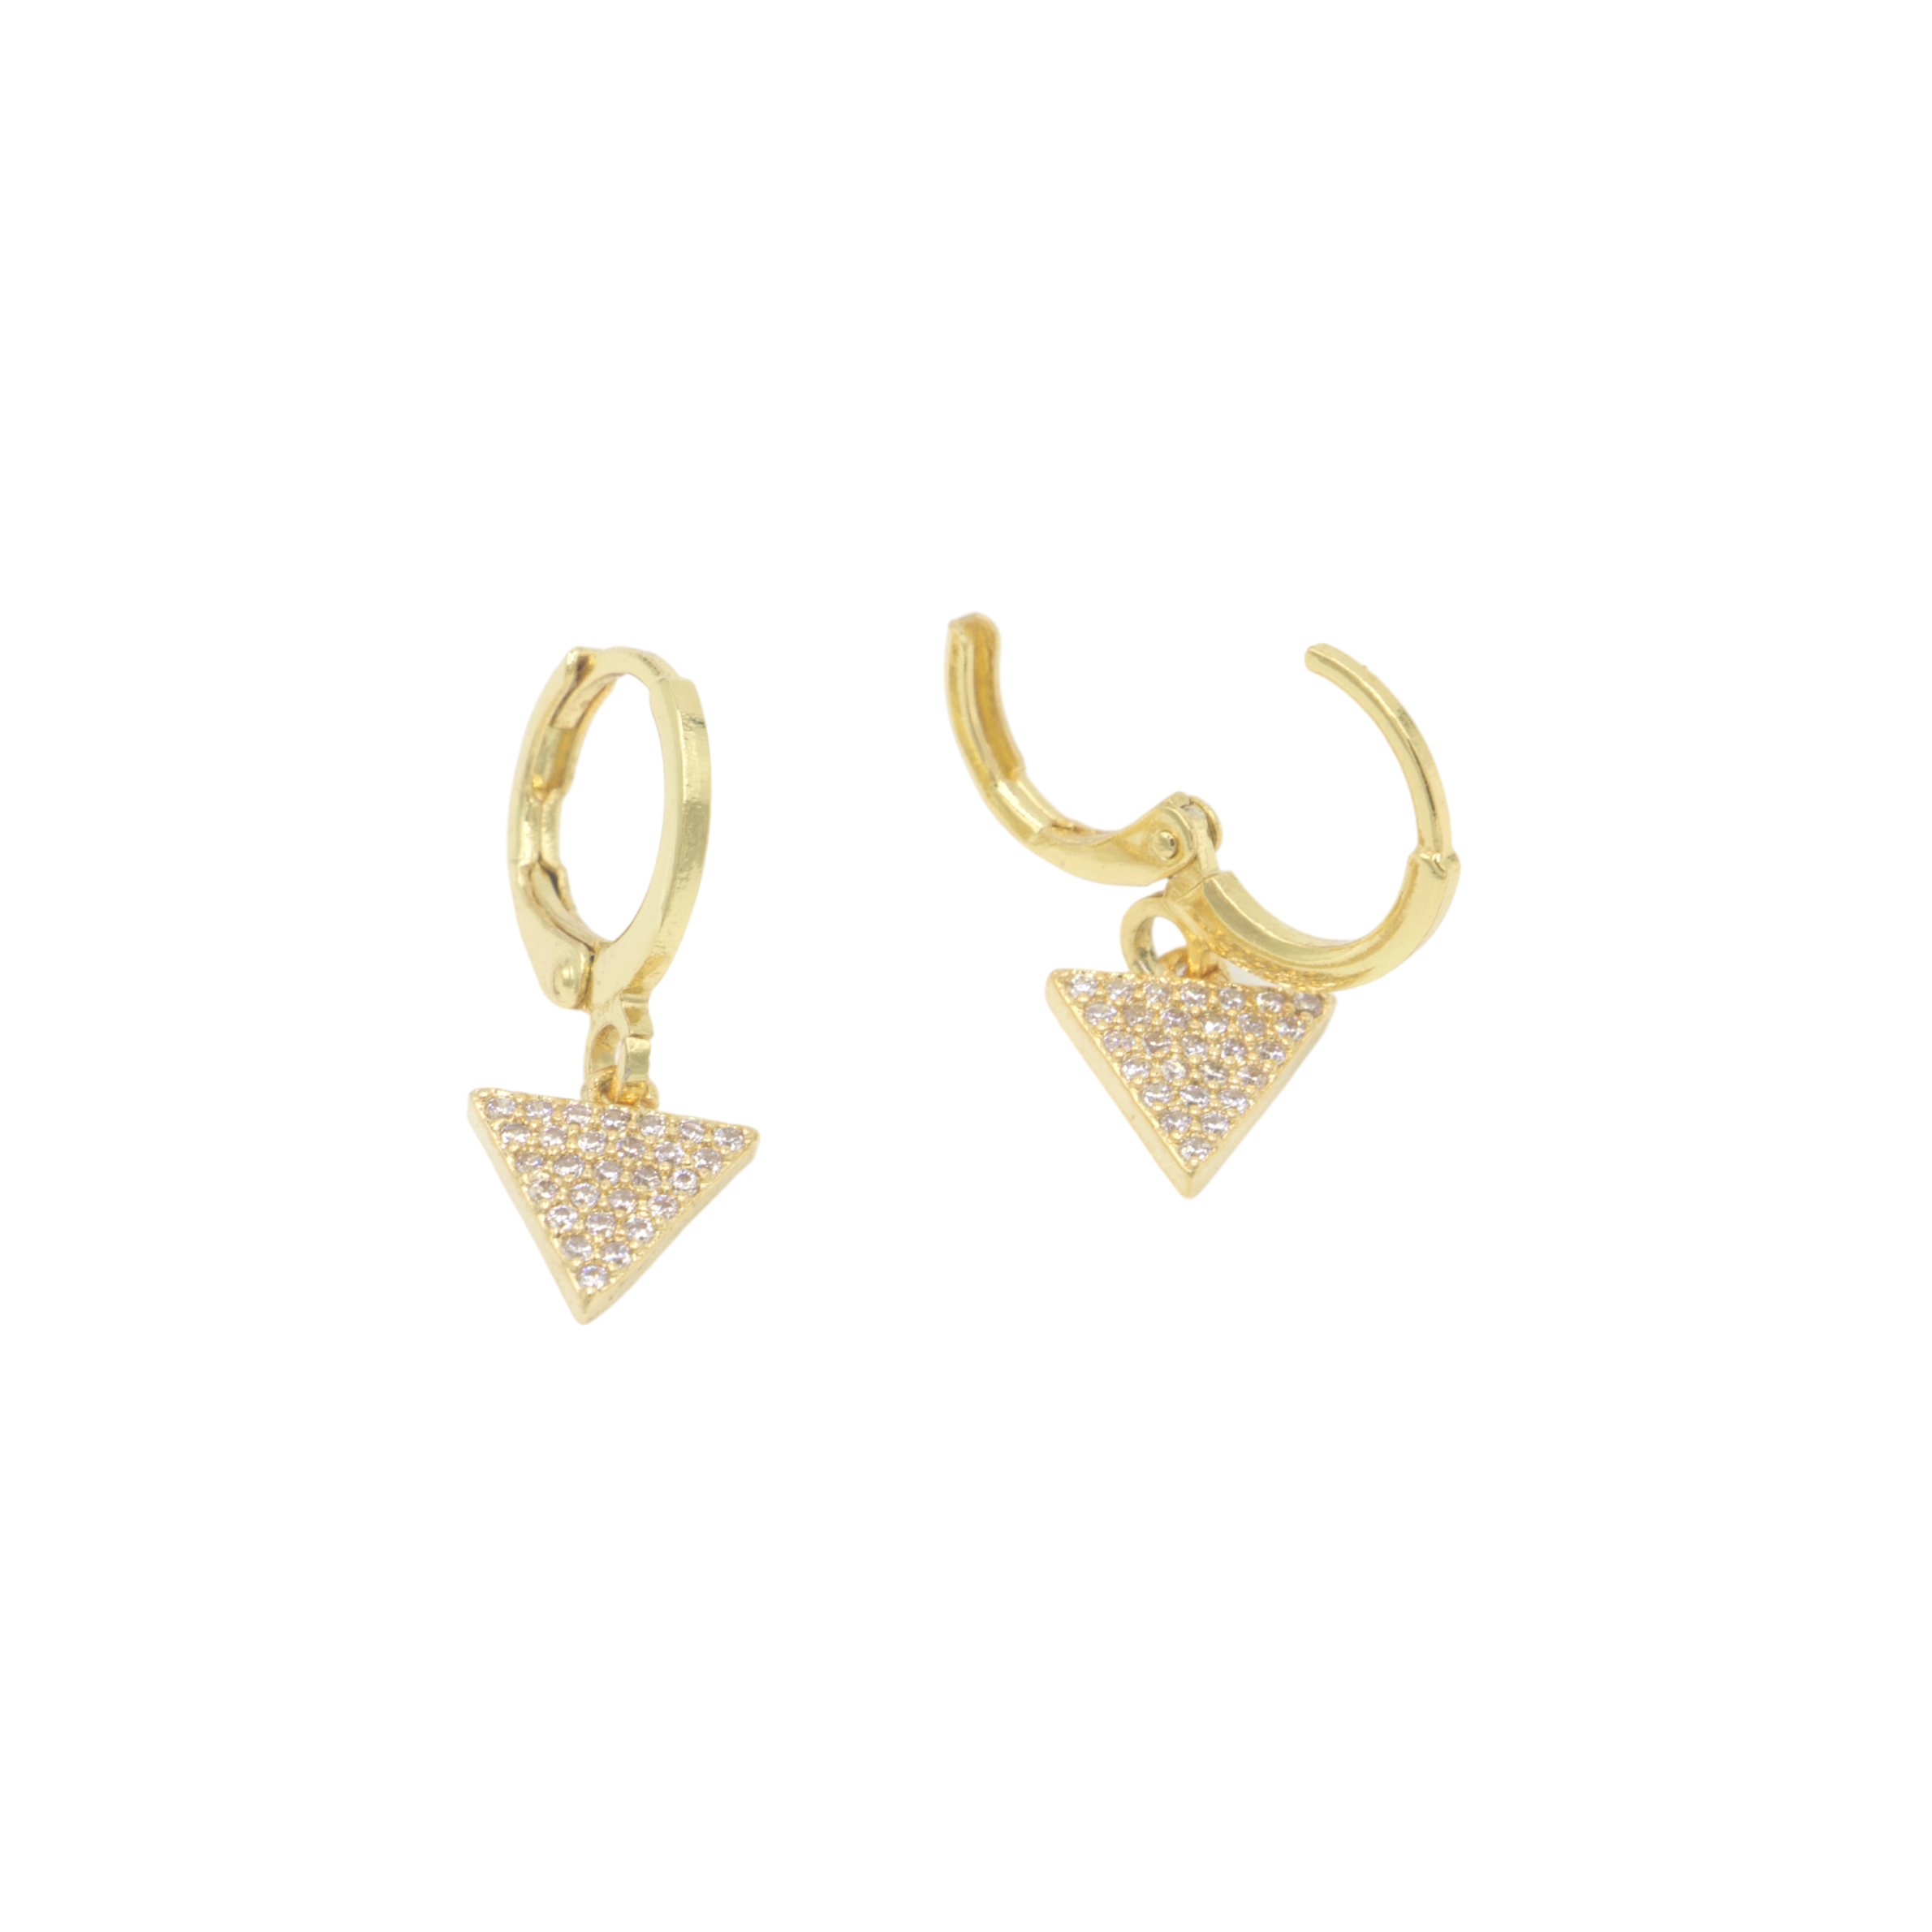 AW Boutique's gold filled huggie earrings featuring a dainty triangle shaped charm hanging off, filled with cubic zirconia crystals.